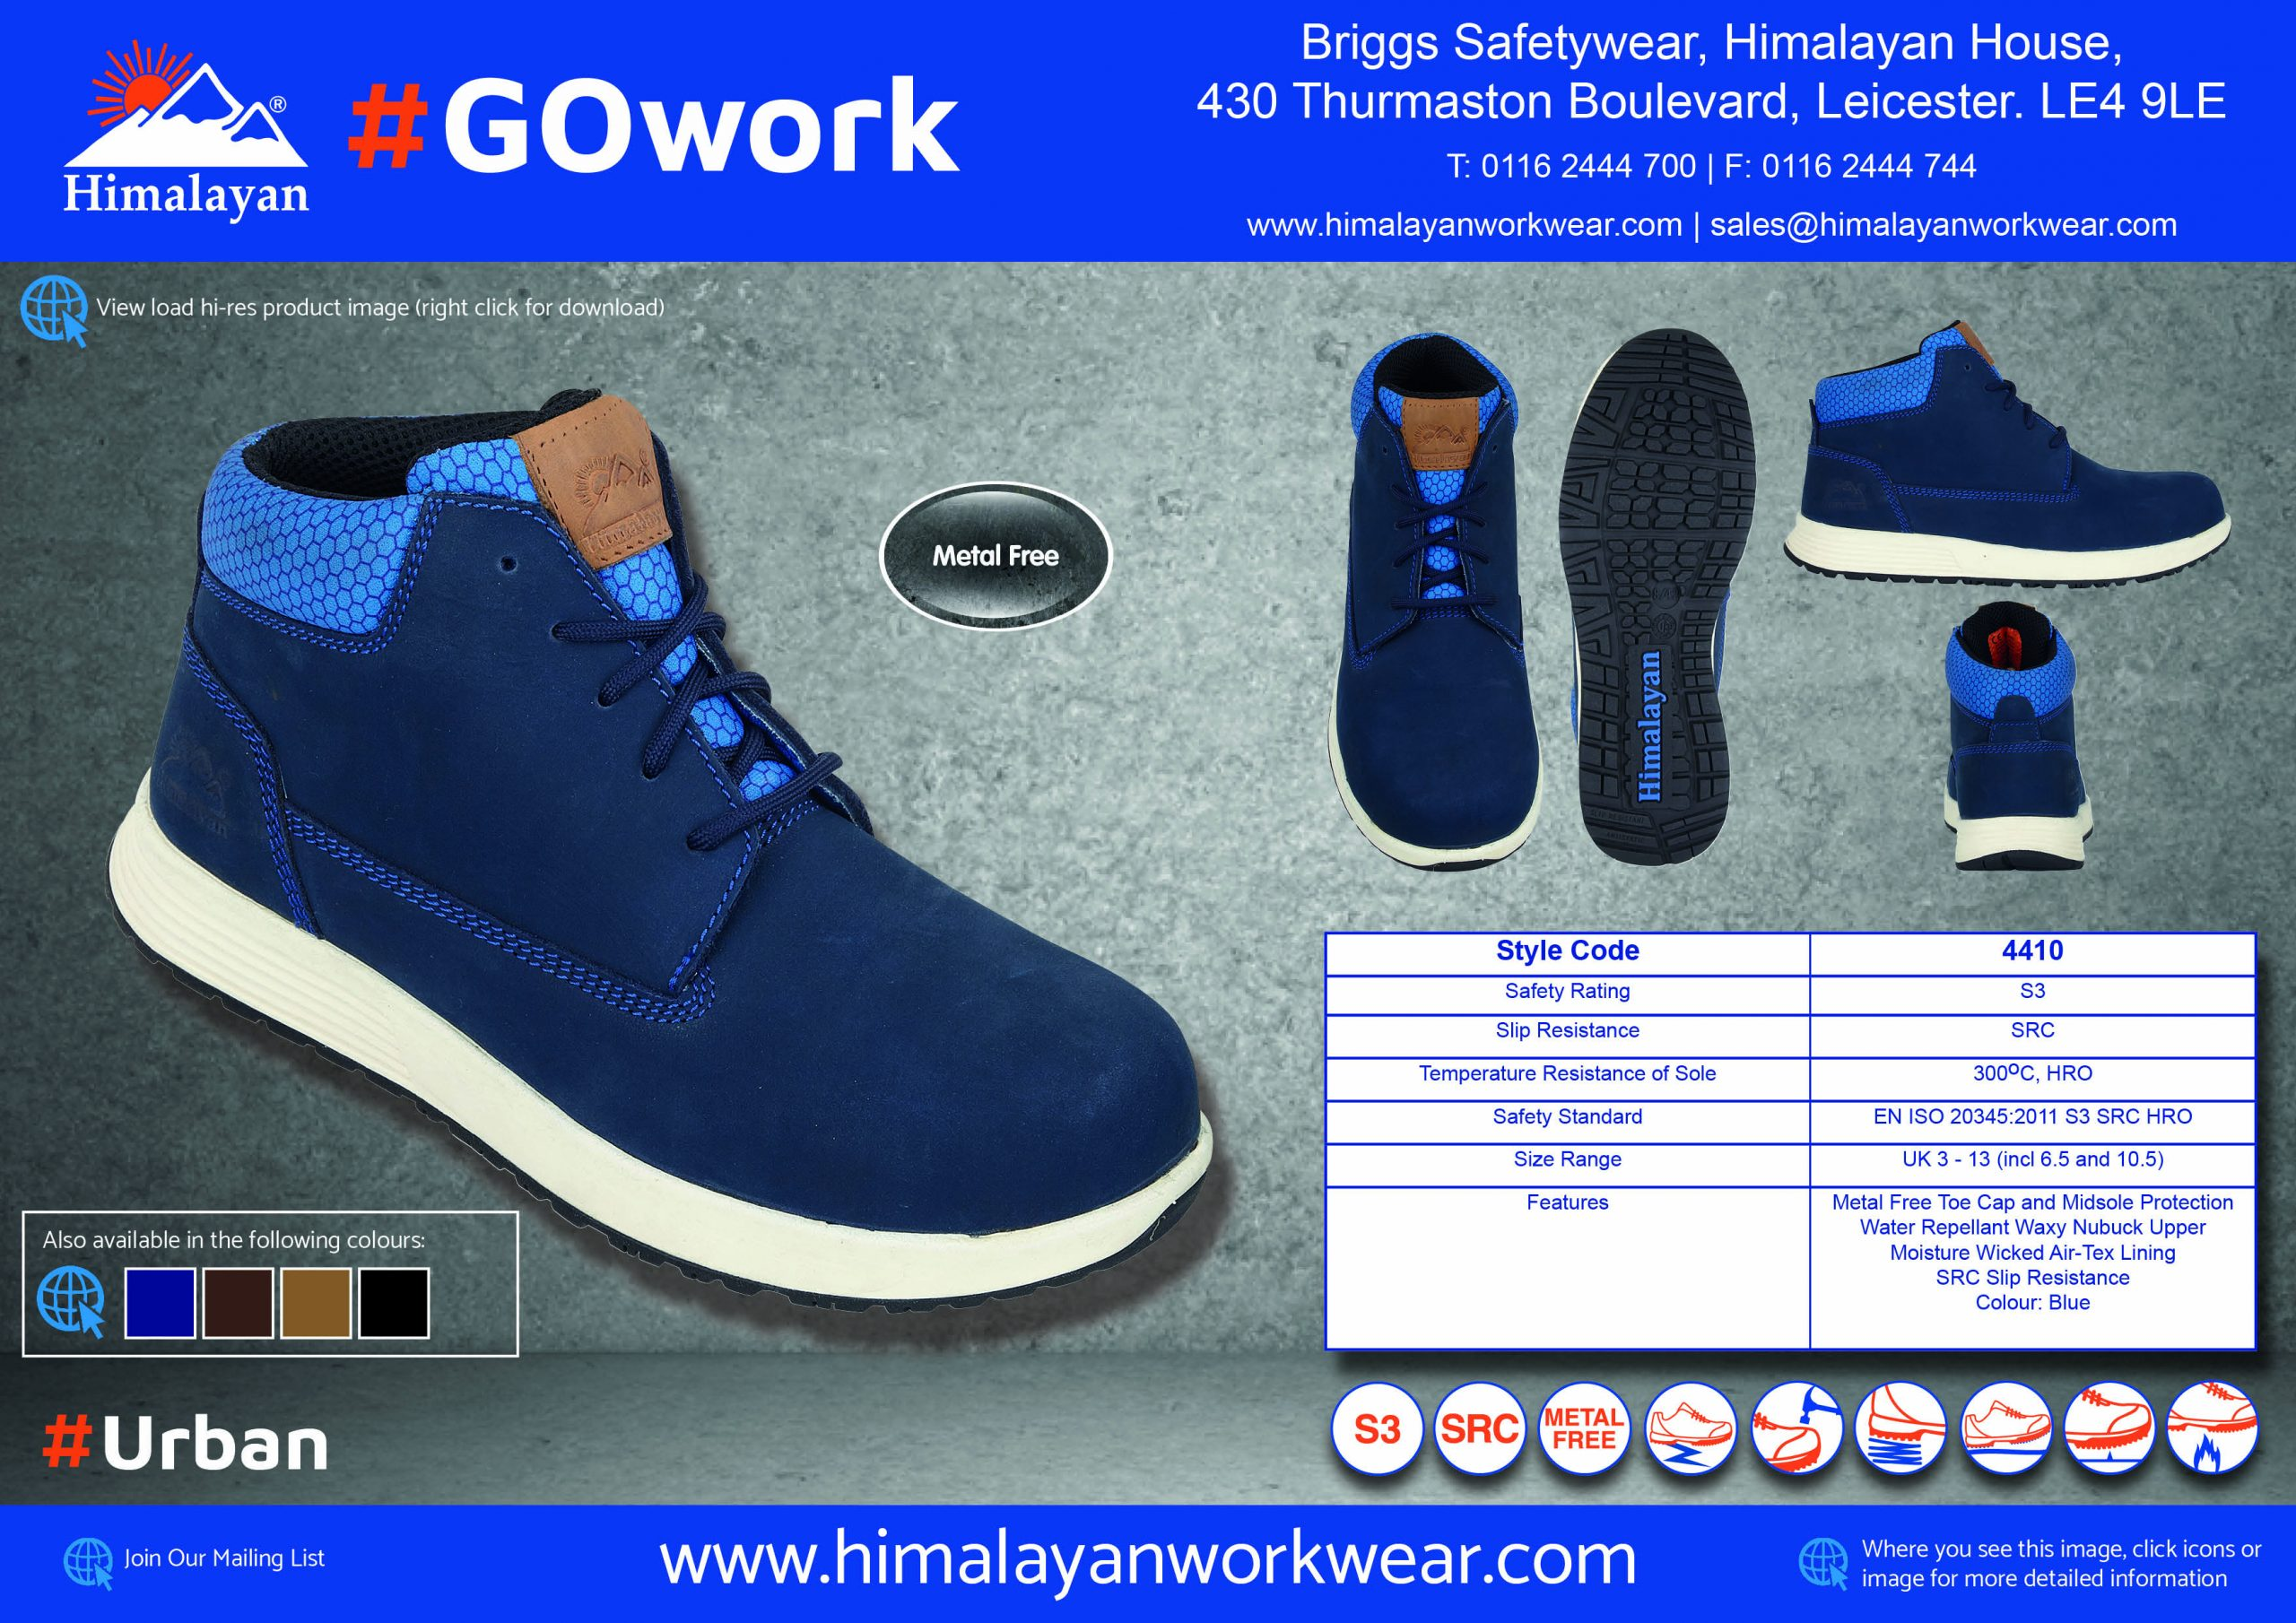 Specification Sheets for #GOwork Now Available To Download